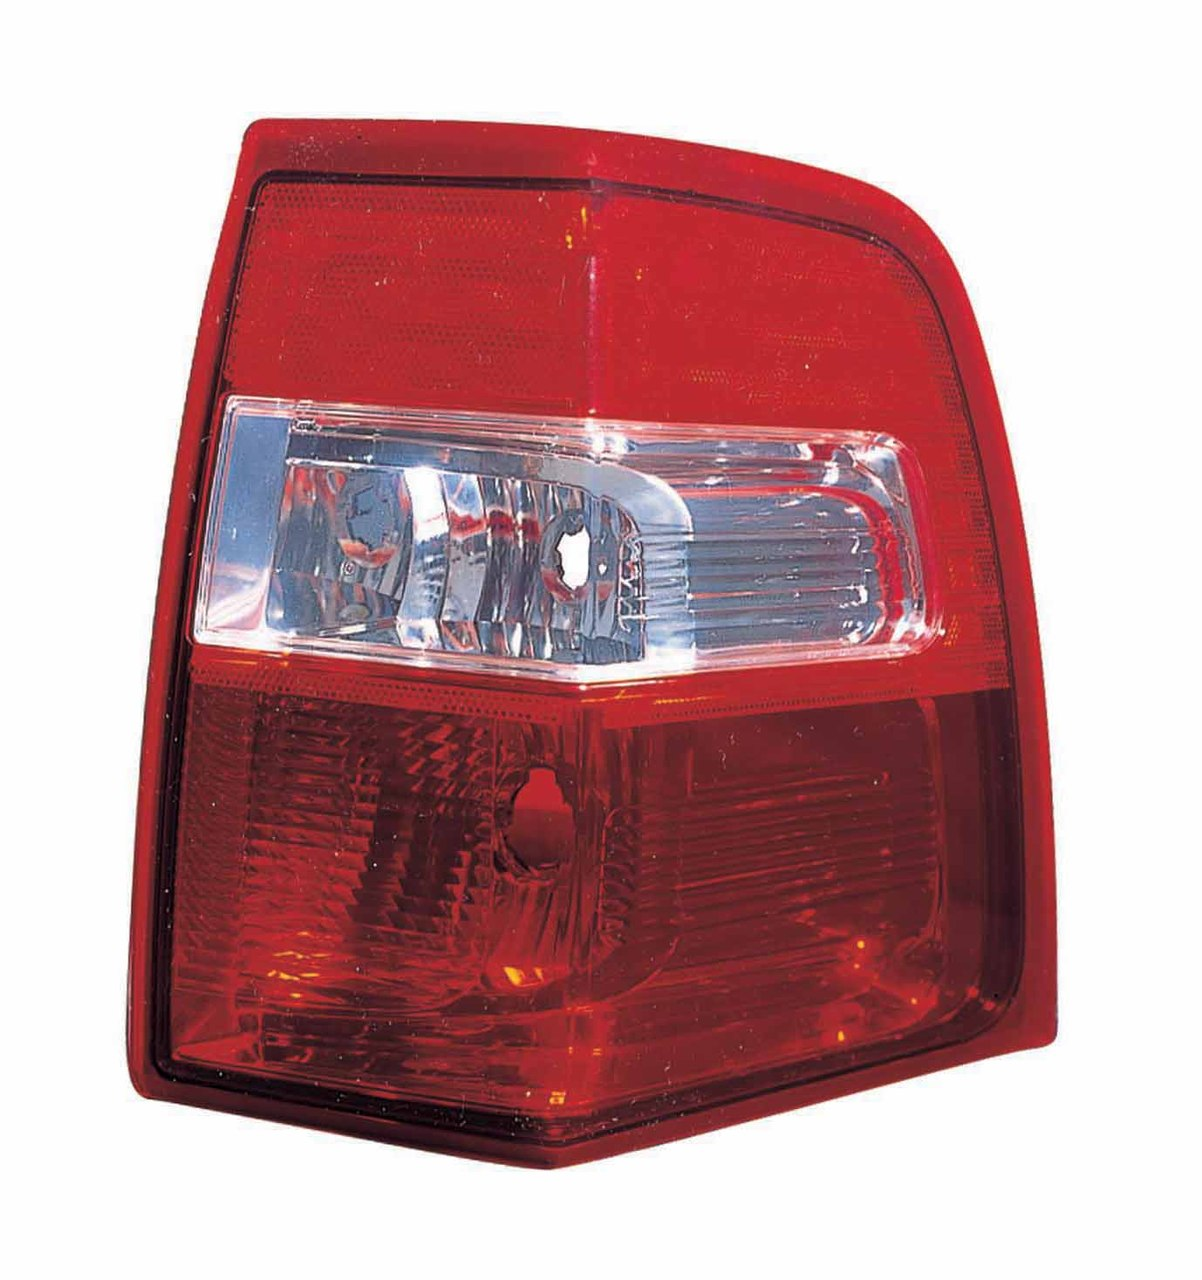 Ford Expedition 2007 2008 2009 2010 2011 2012 2013 2014 tail light right passenger